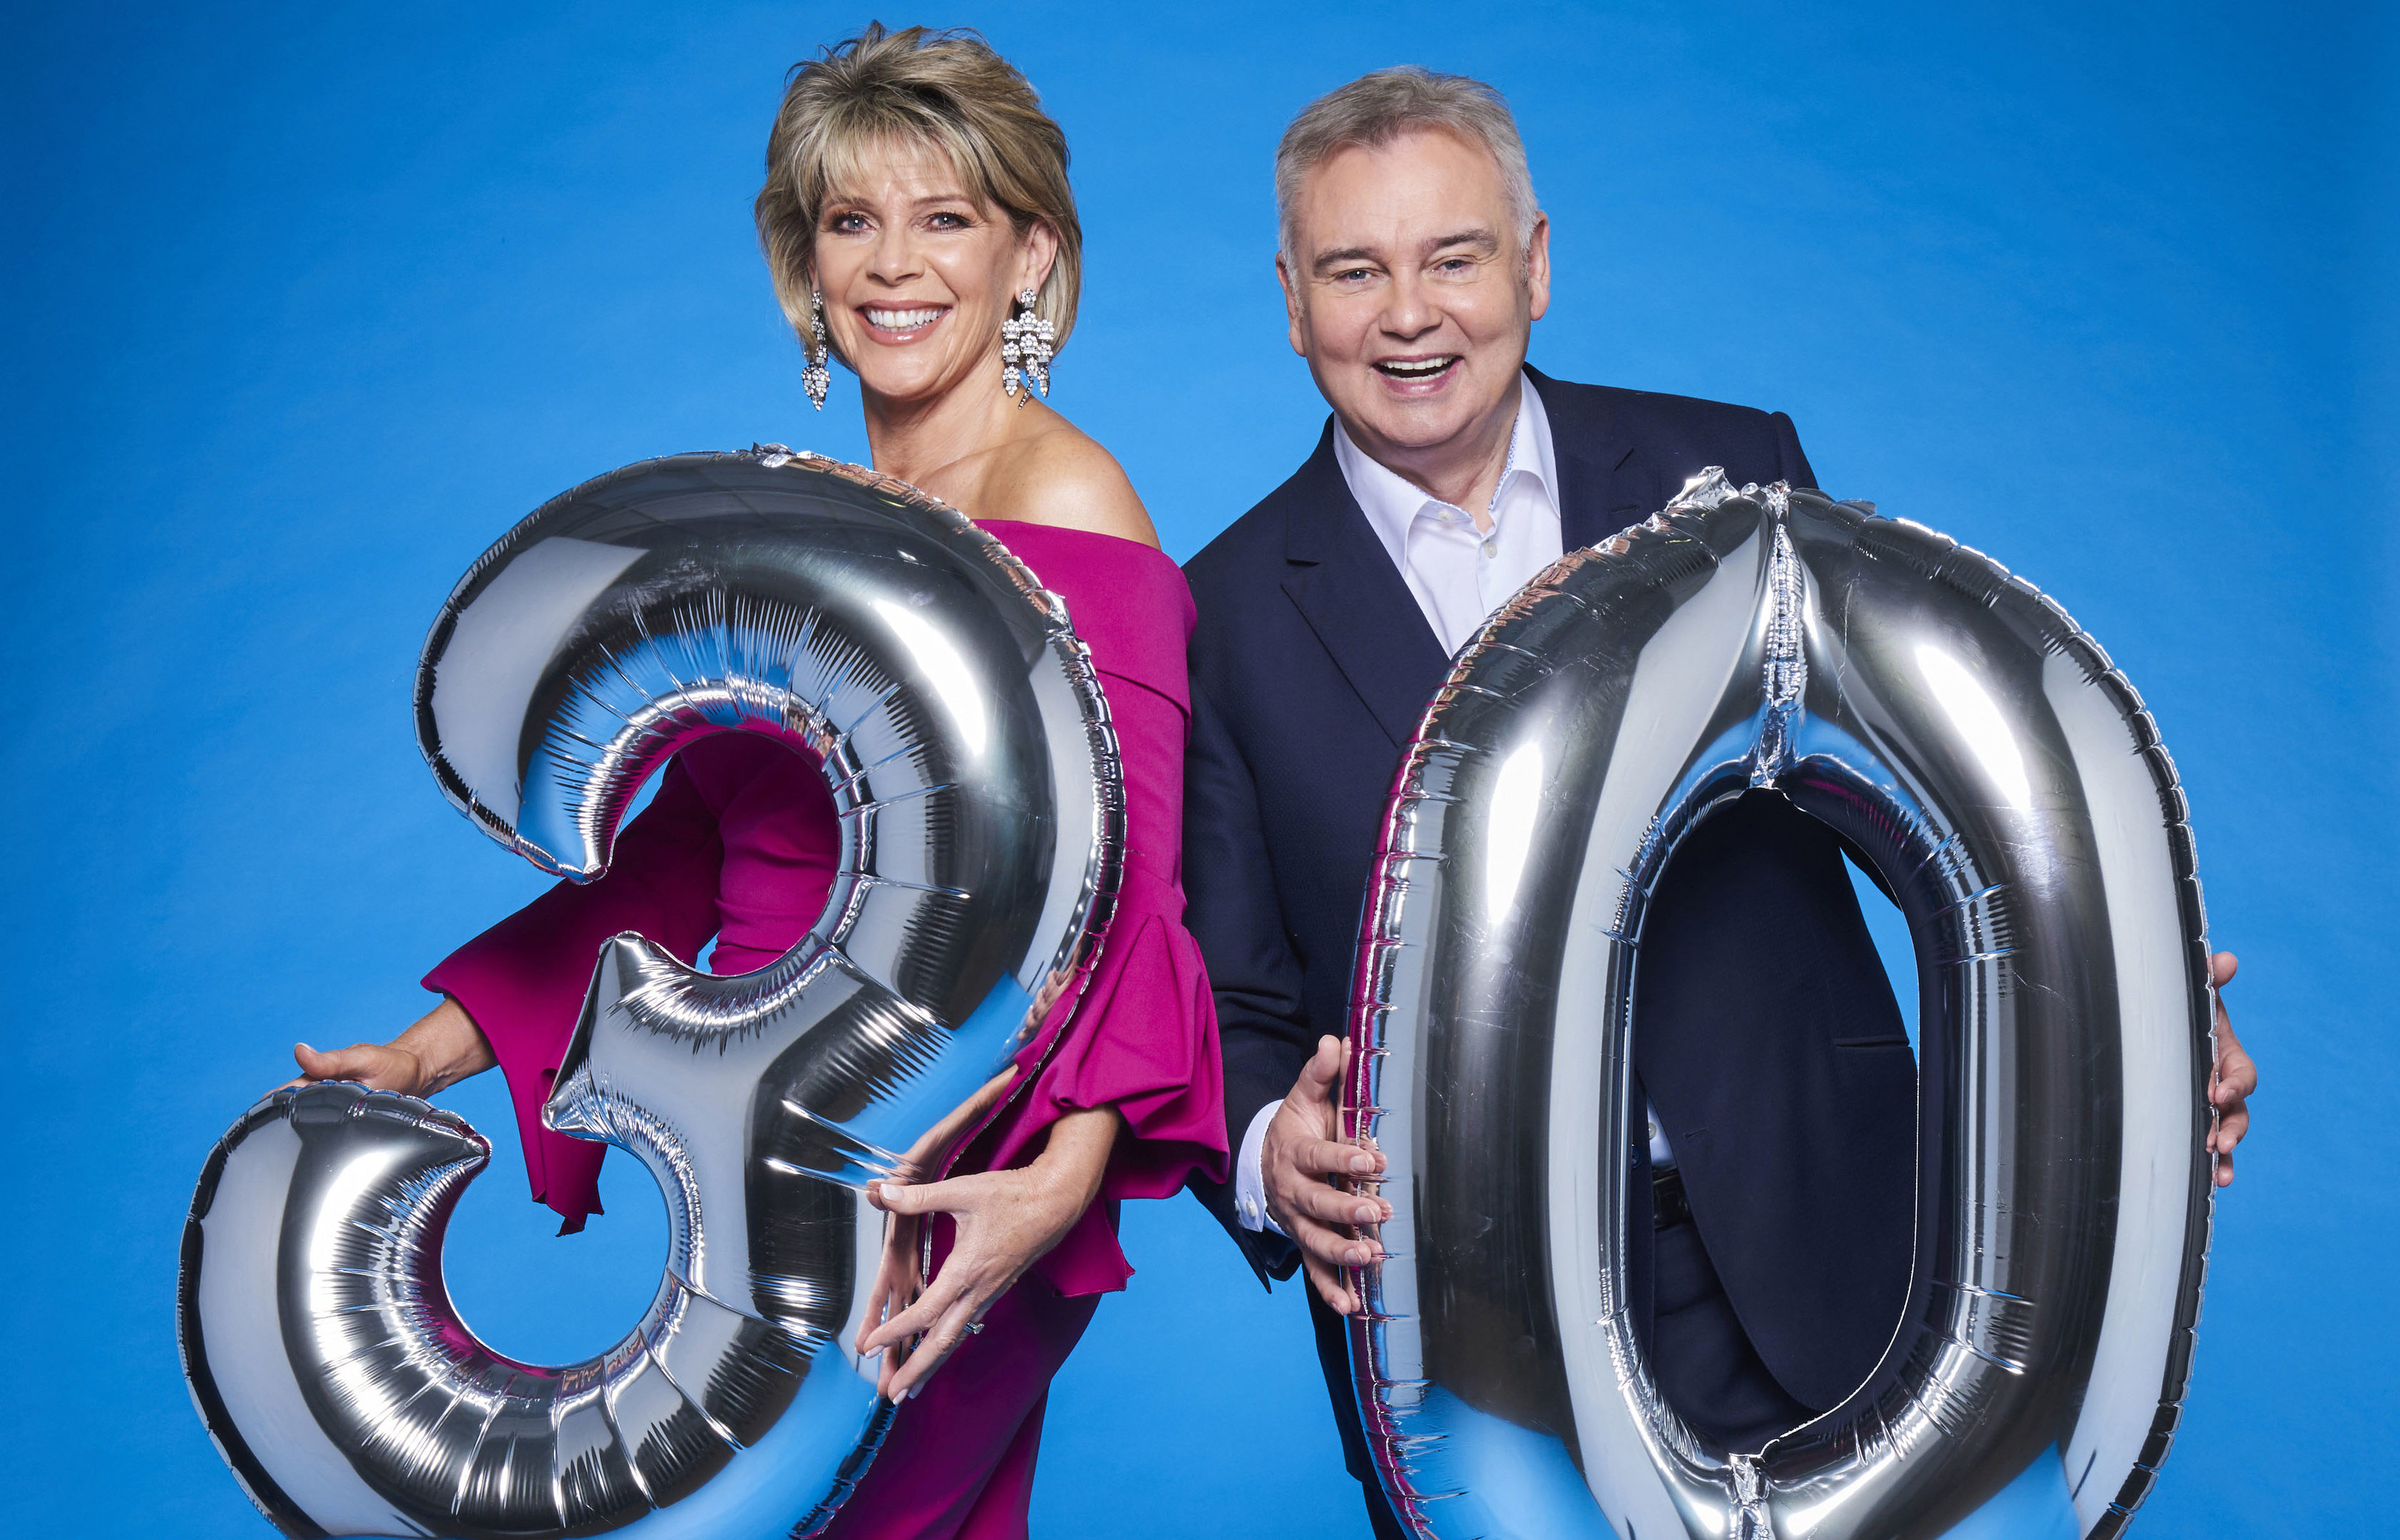 Eamonn Holmes and Ruth Langford celebrate 30 years of This Morning (ITV / Ken McKay)